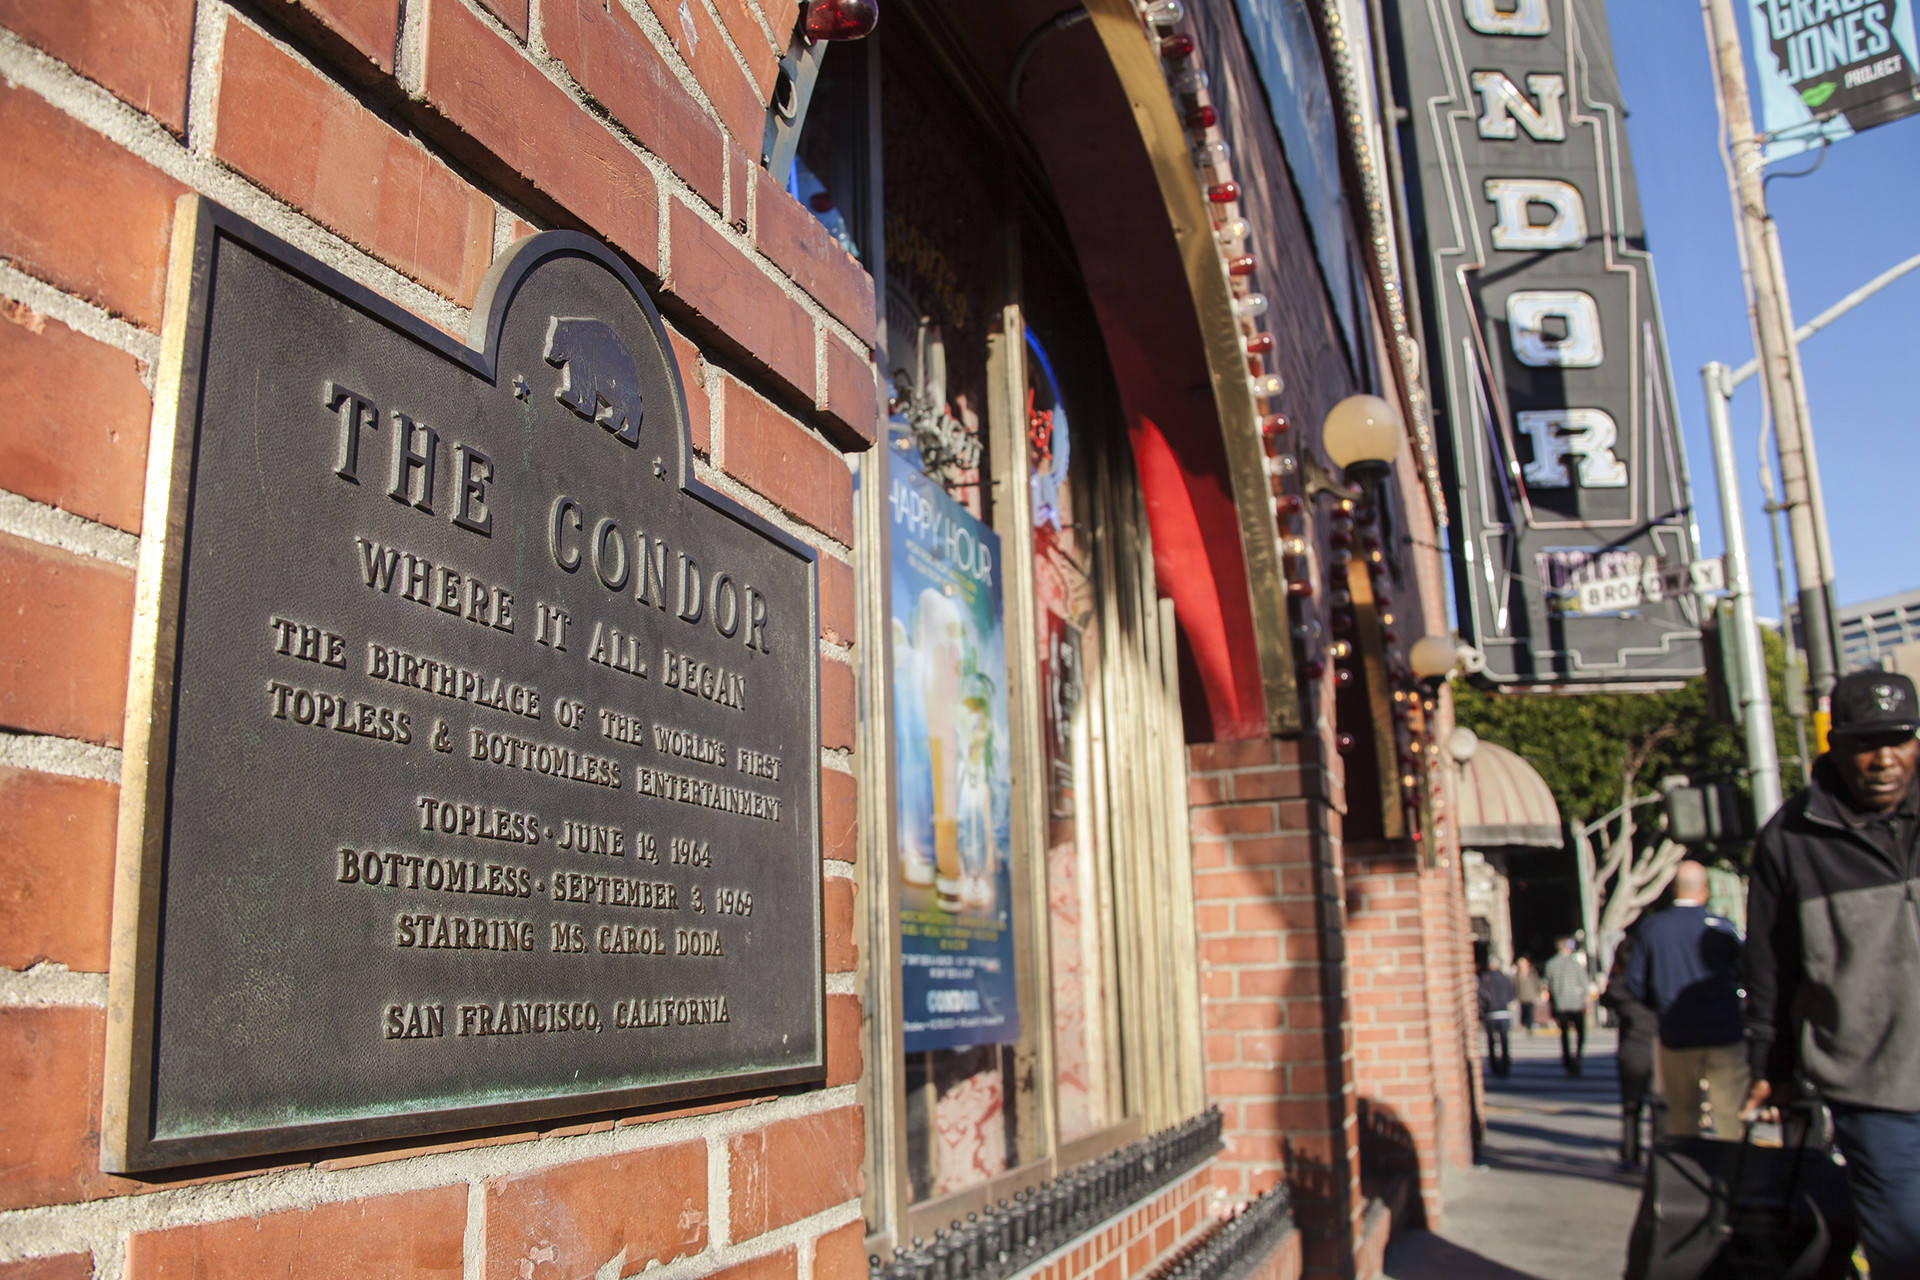 A plaque hangs outside the Condor Club in San Francisco.